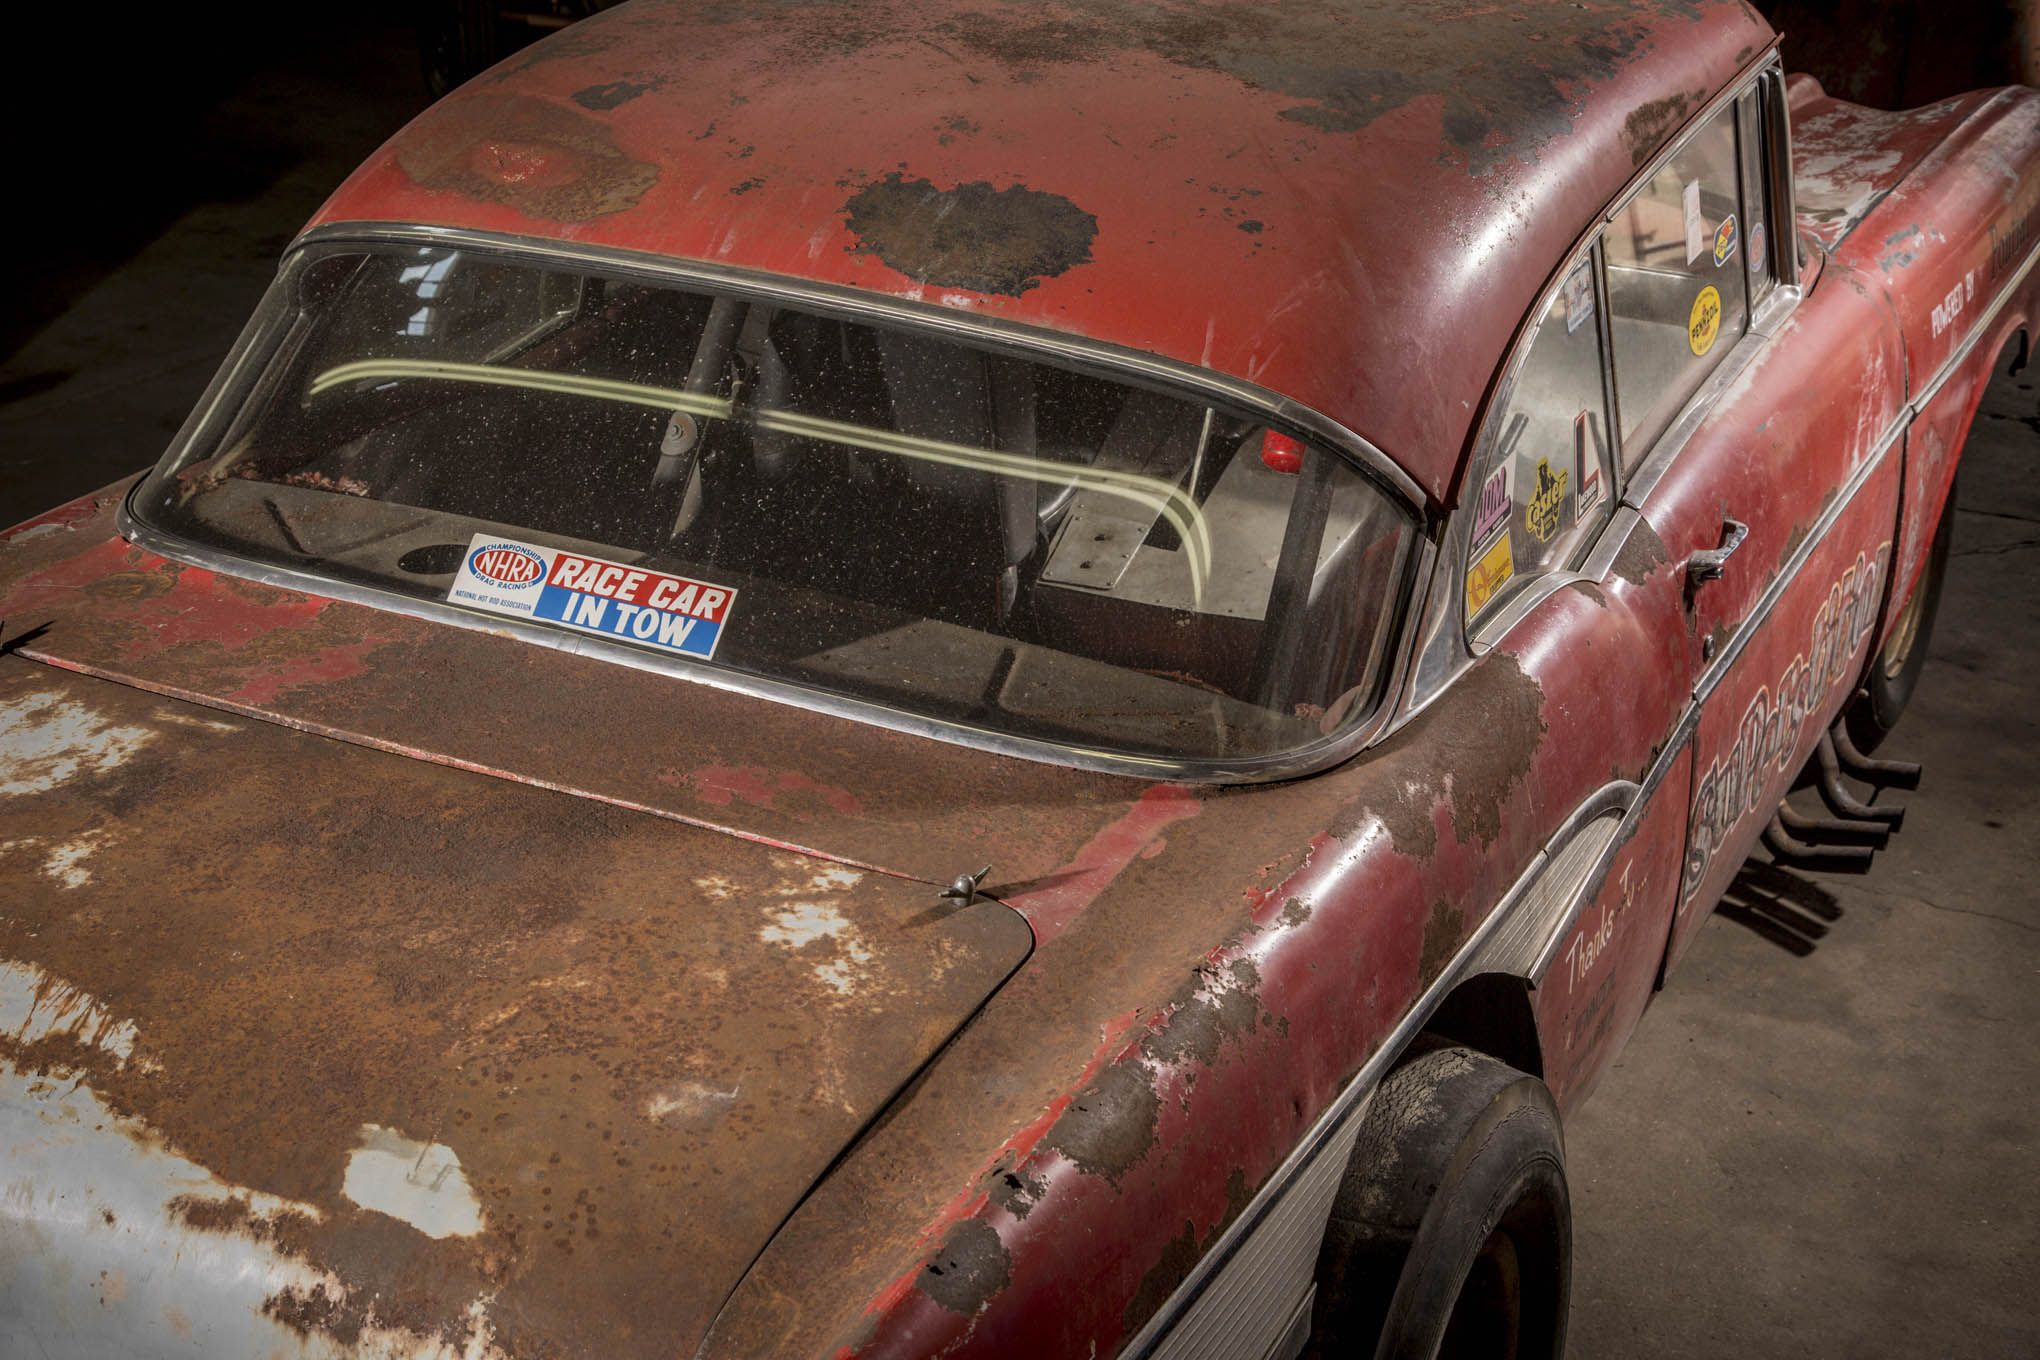 Superstition was stored in an open yard exposed to the elements for decades. Hence she has rather a lot of rusty panels that are in surprisingly good shape. (Picture courtesy Drew Hardin at hotrod.com)